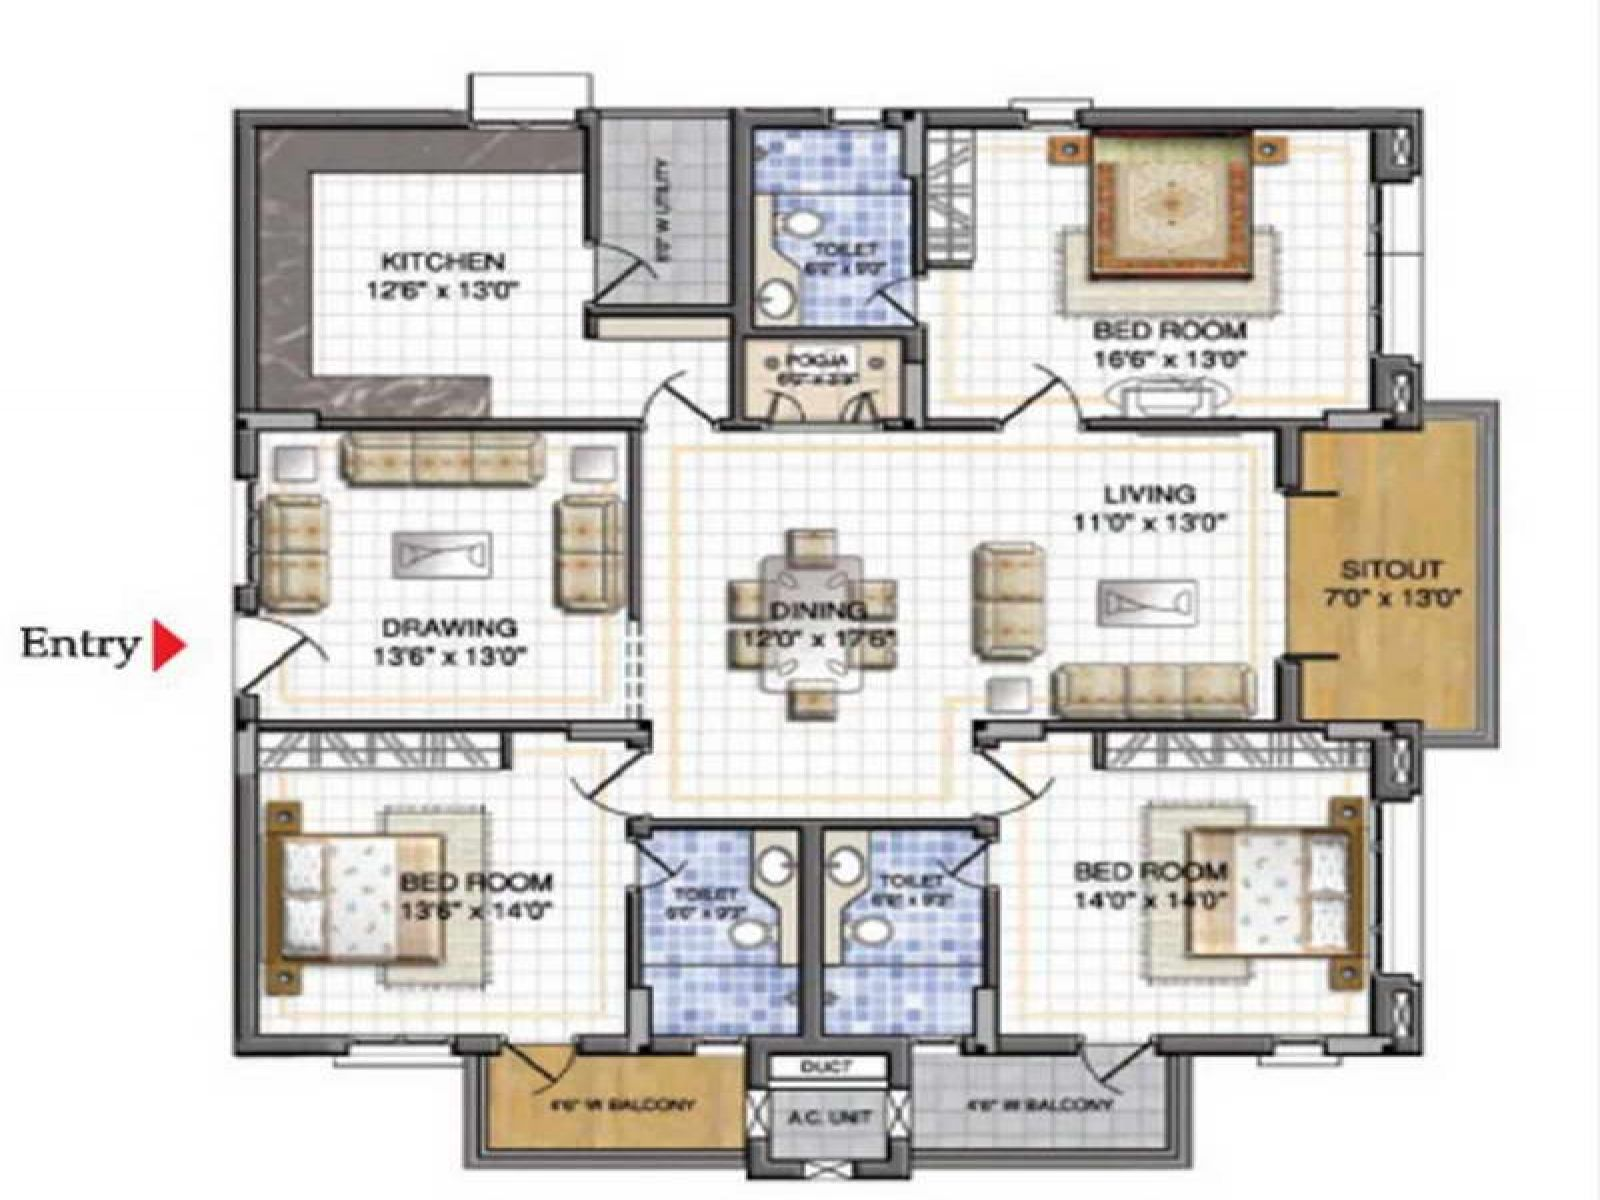 Sweet home 3d plans google search house designs Design your own floor plan software